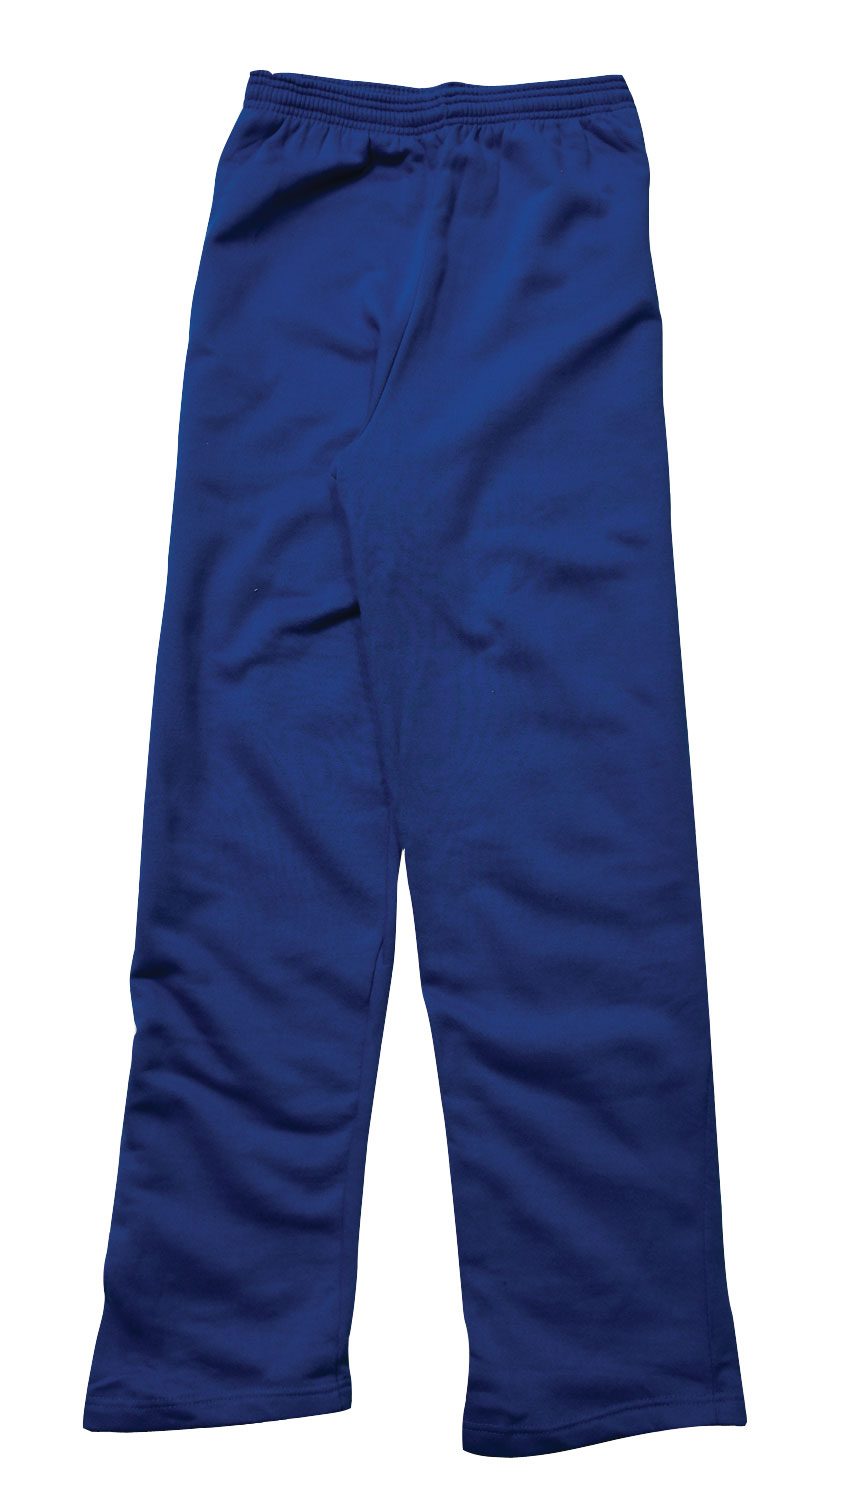 All American USA Jet Sweatpants